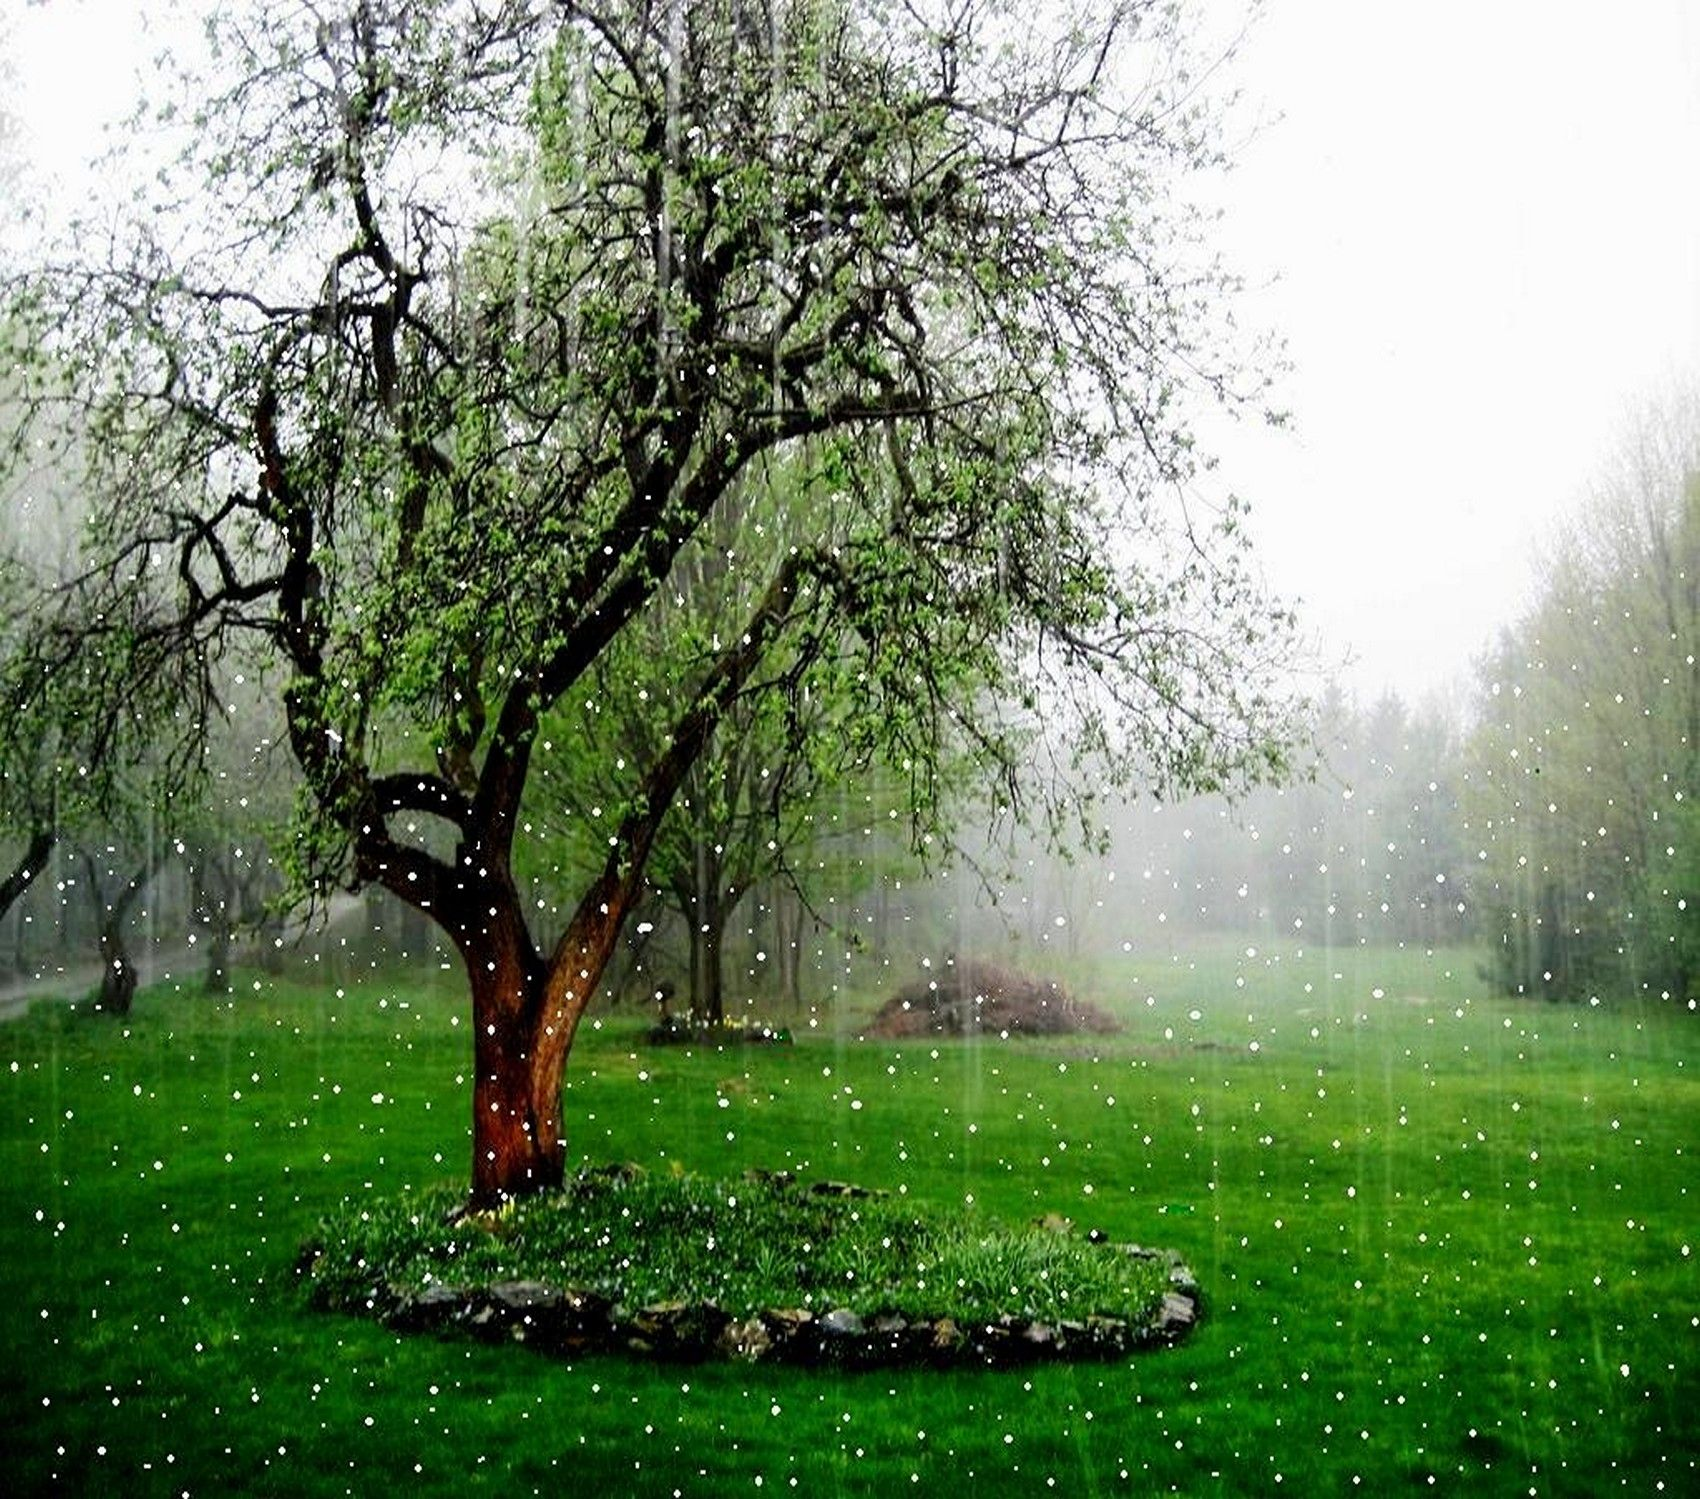 Pin By A L L I S T E R On L O V E T H E R A I N Fall Photography Nature Rain Wallpapers Rainy Day Wallpaper